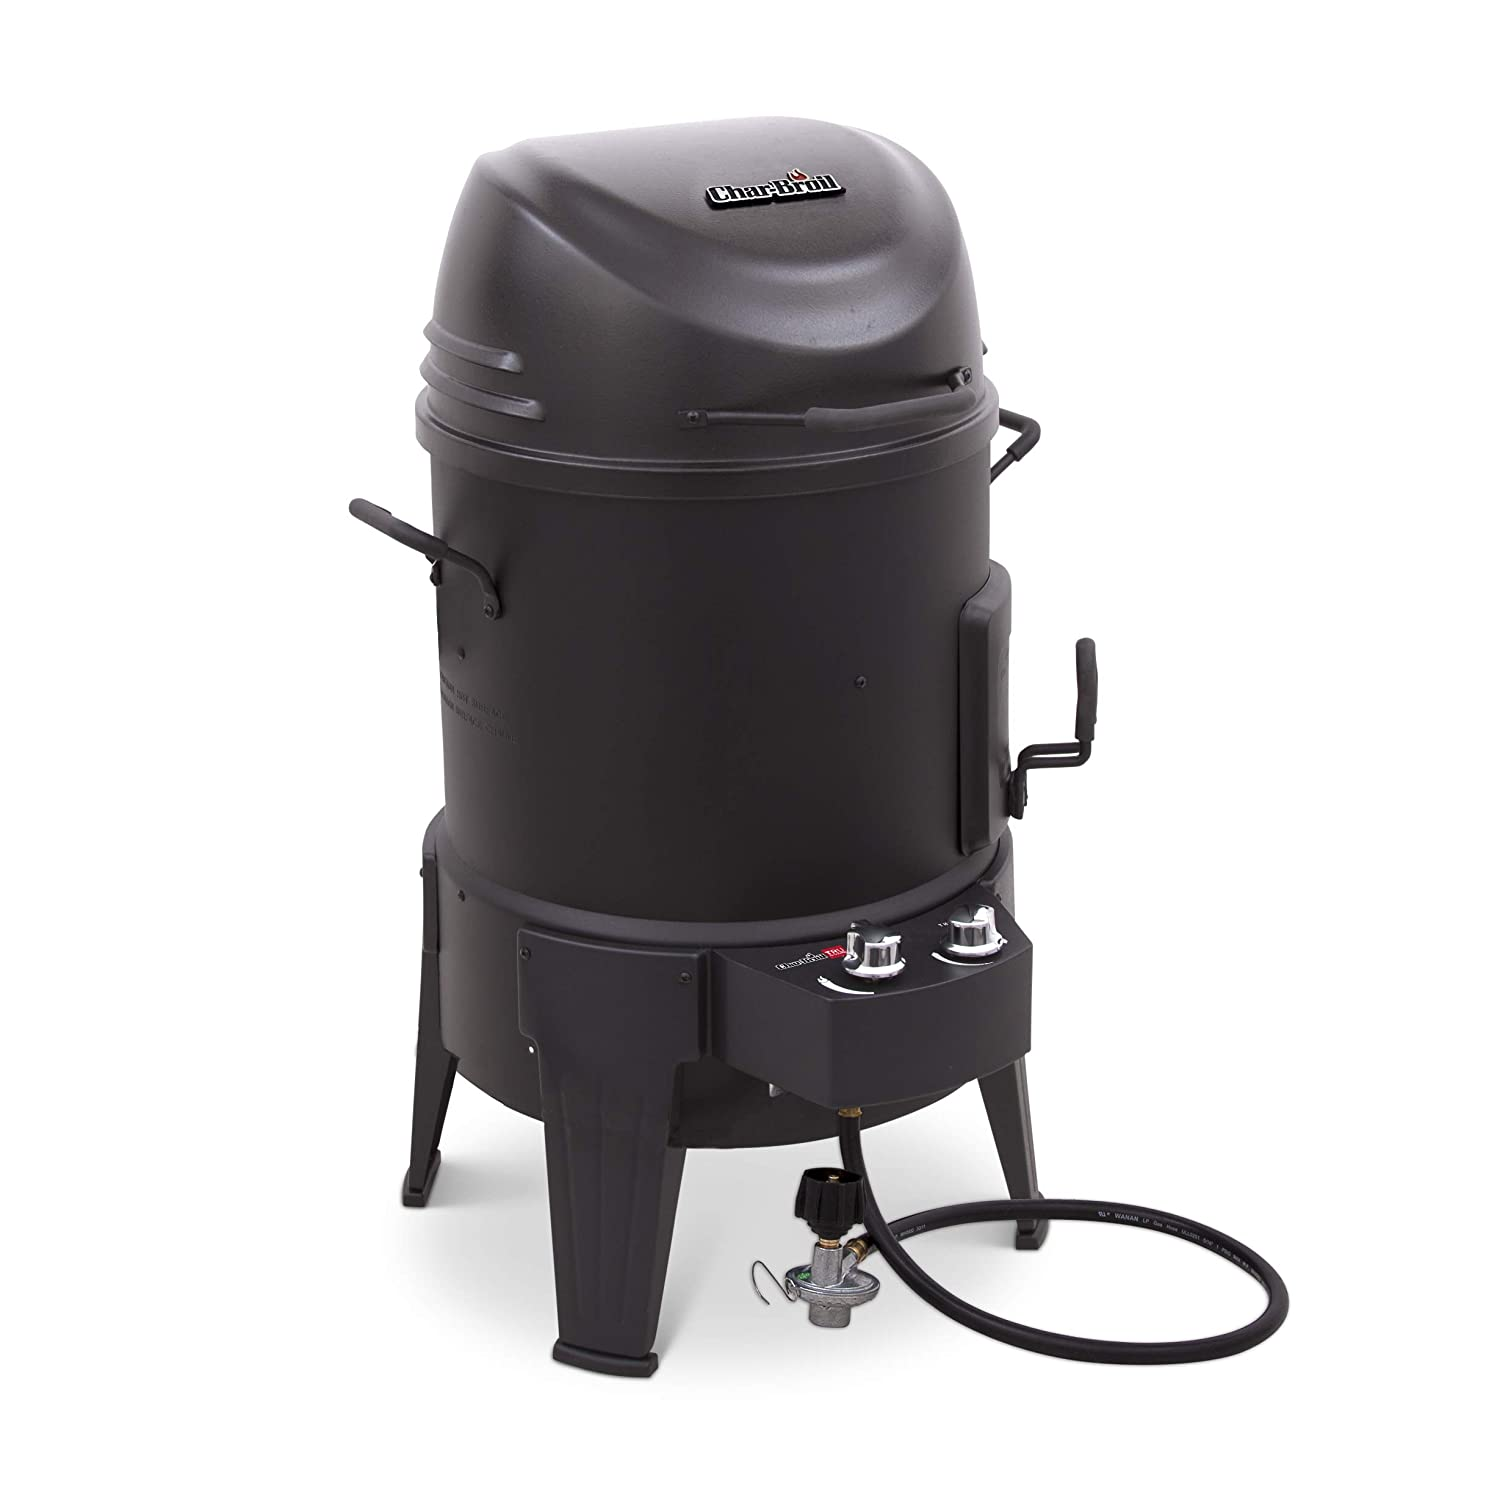 1. Char-Broil The Big Easy TRU-Infrared Smoker Roaster & Grill